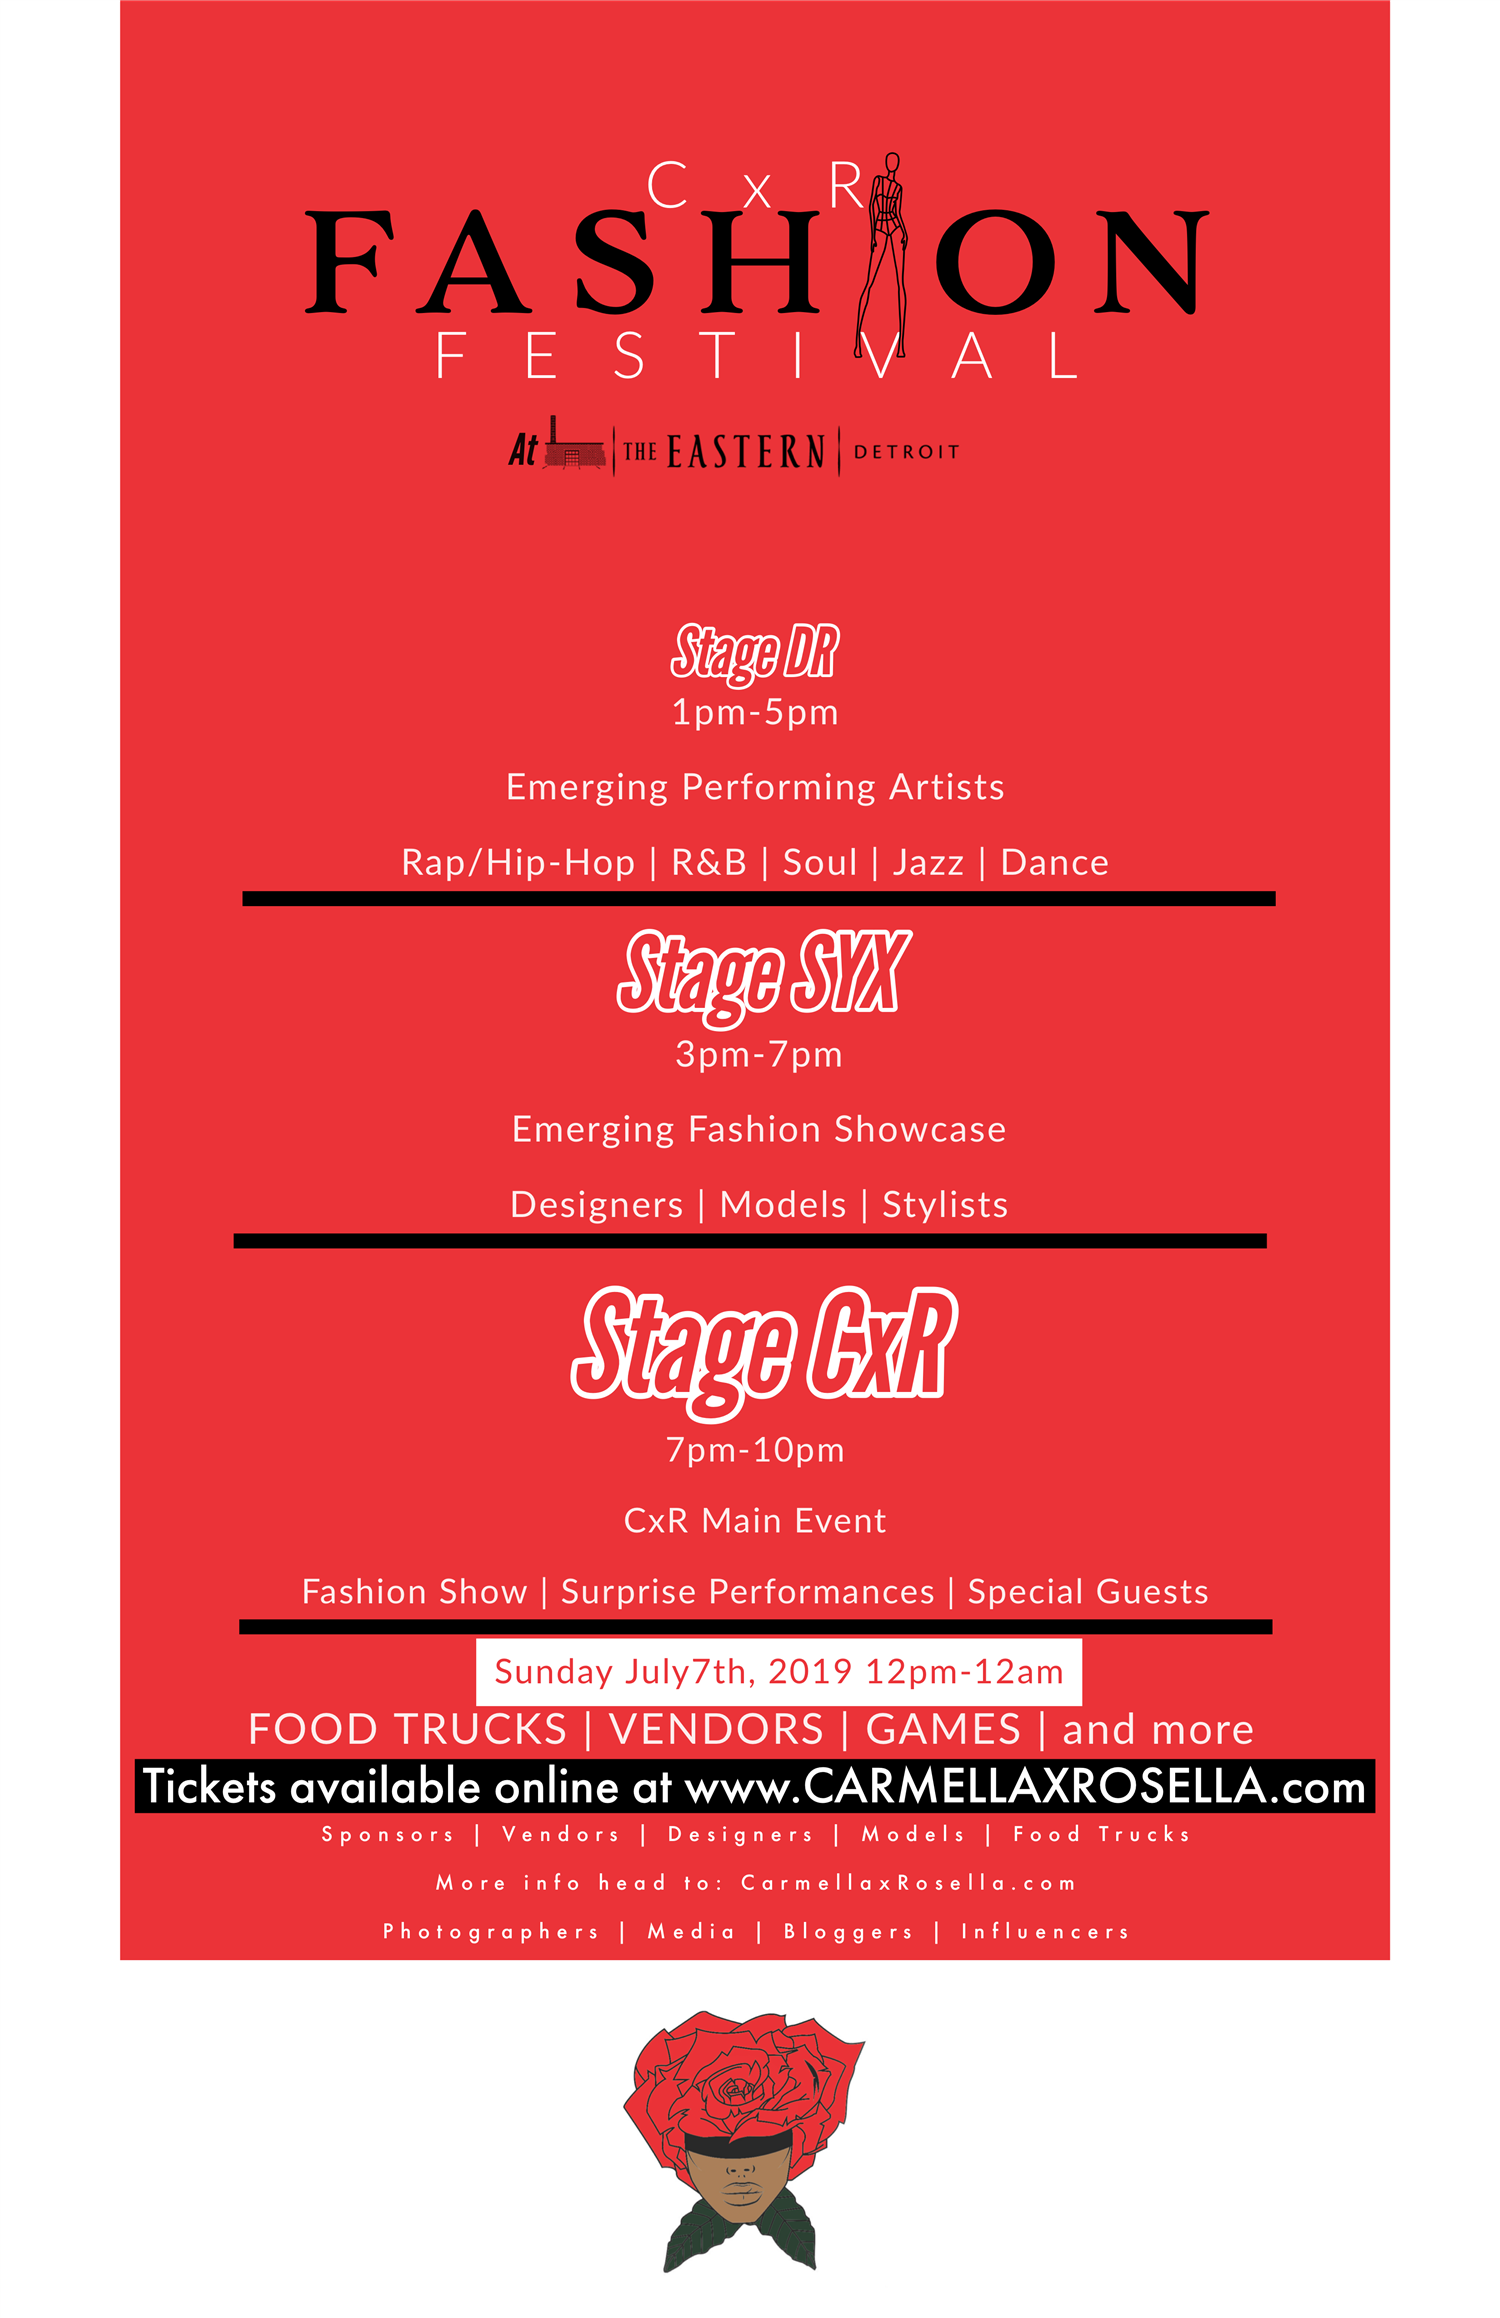 CxR Summer Festival Festival Only on Jul 07, 12:00@The Eastern - Buy tickets and Get information on Carmellaxrosella.com cxr